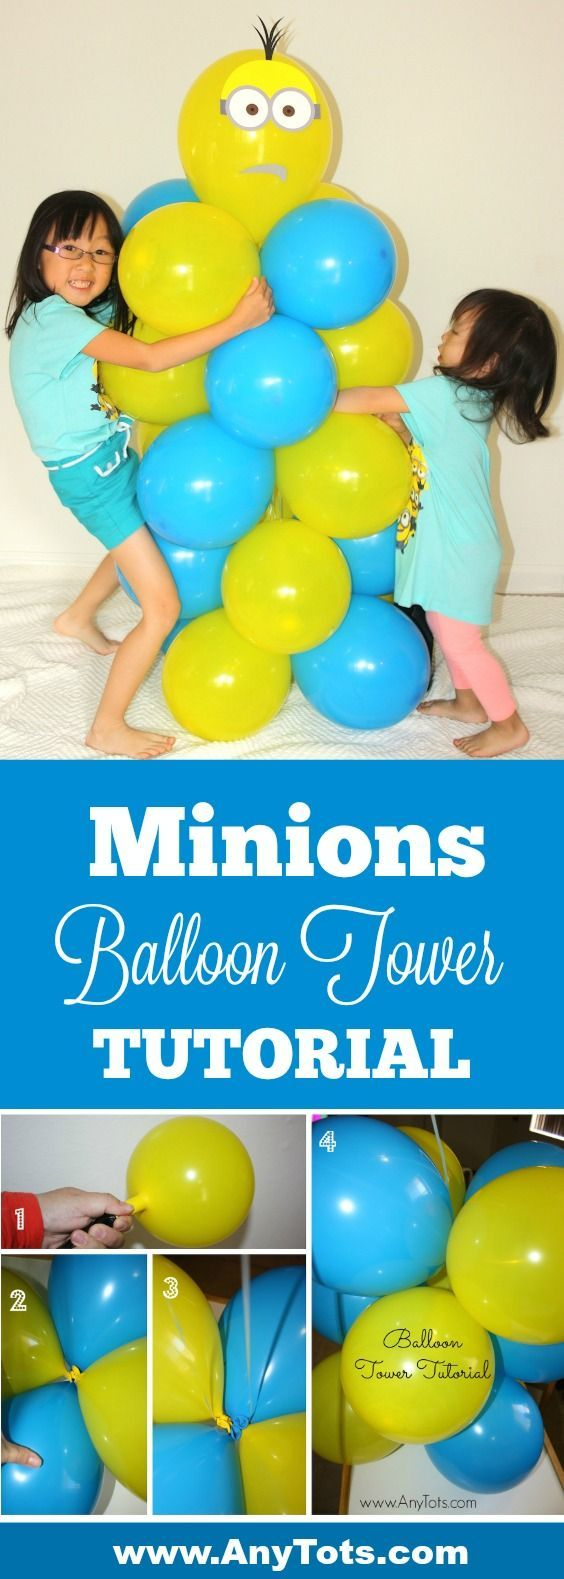 Minions Party Ideas. Go through our Minions Balloon Tower Tutorial on the blog. www.anytots.com Bonus: Free Printable Minions party booth props. www.anytots.com